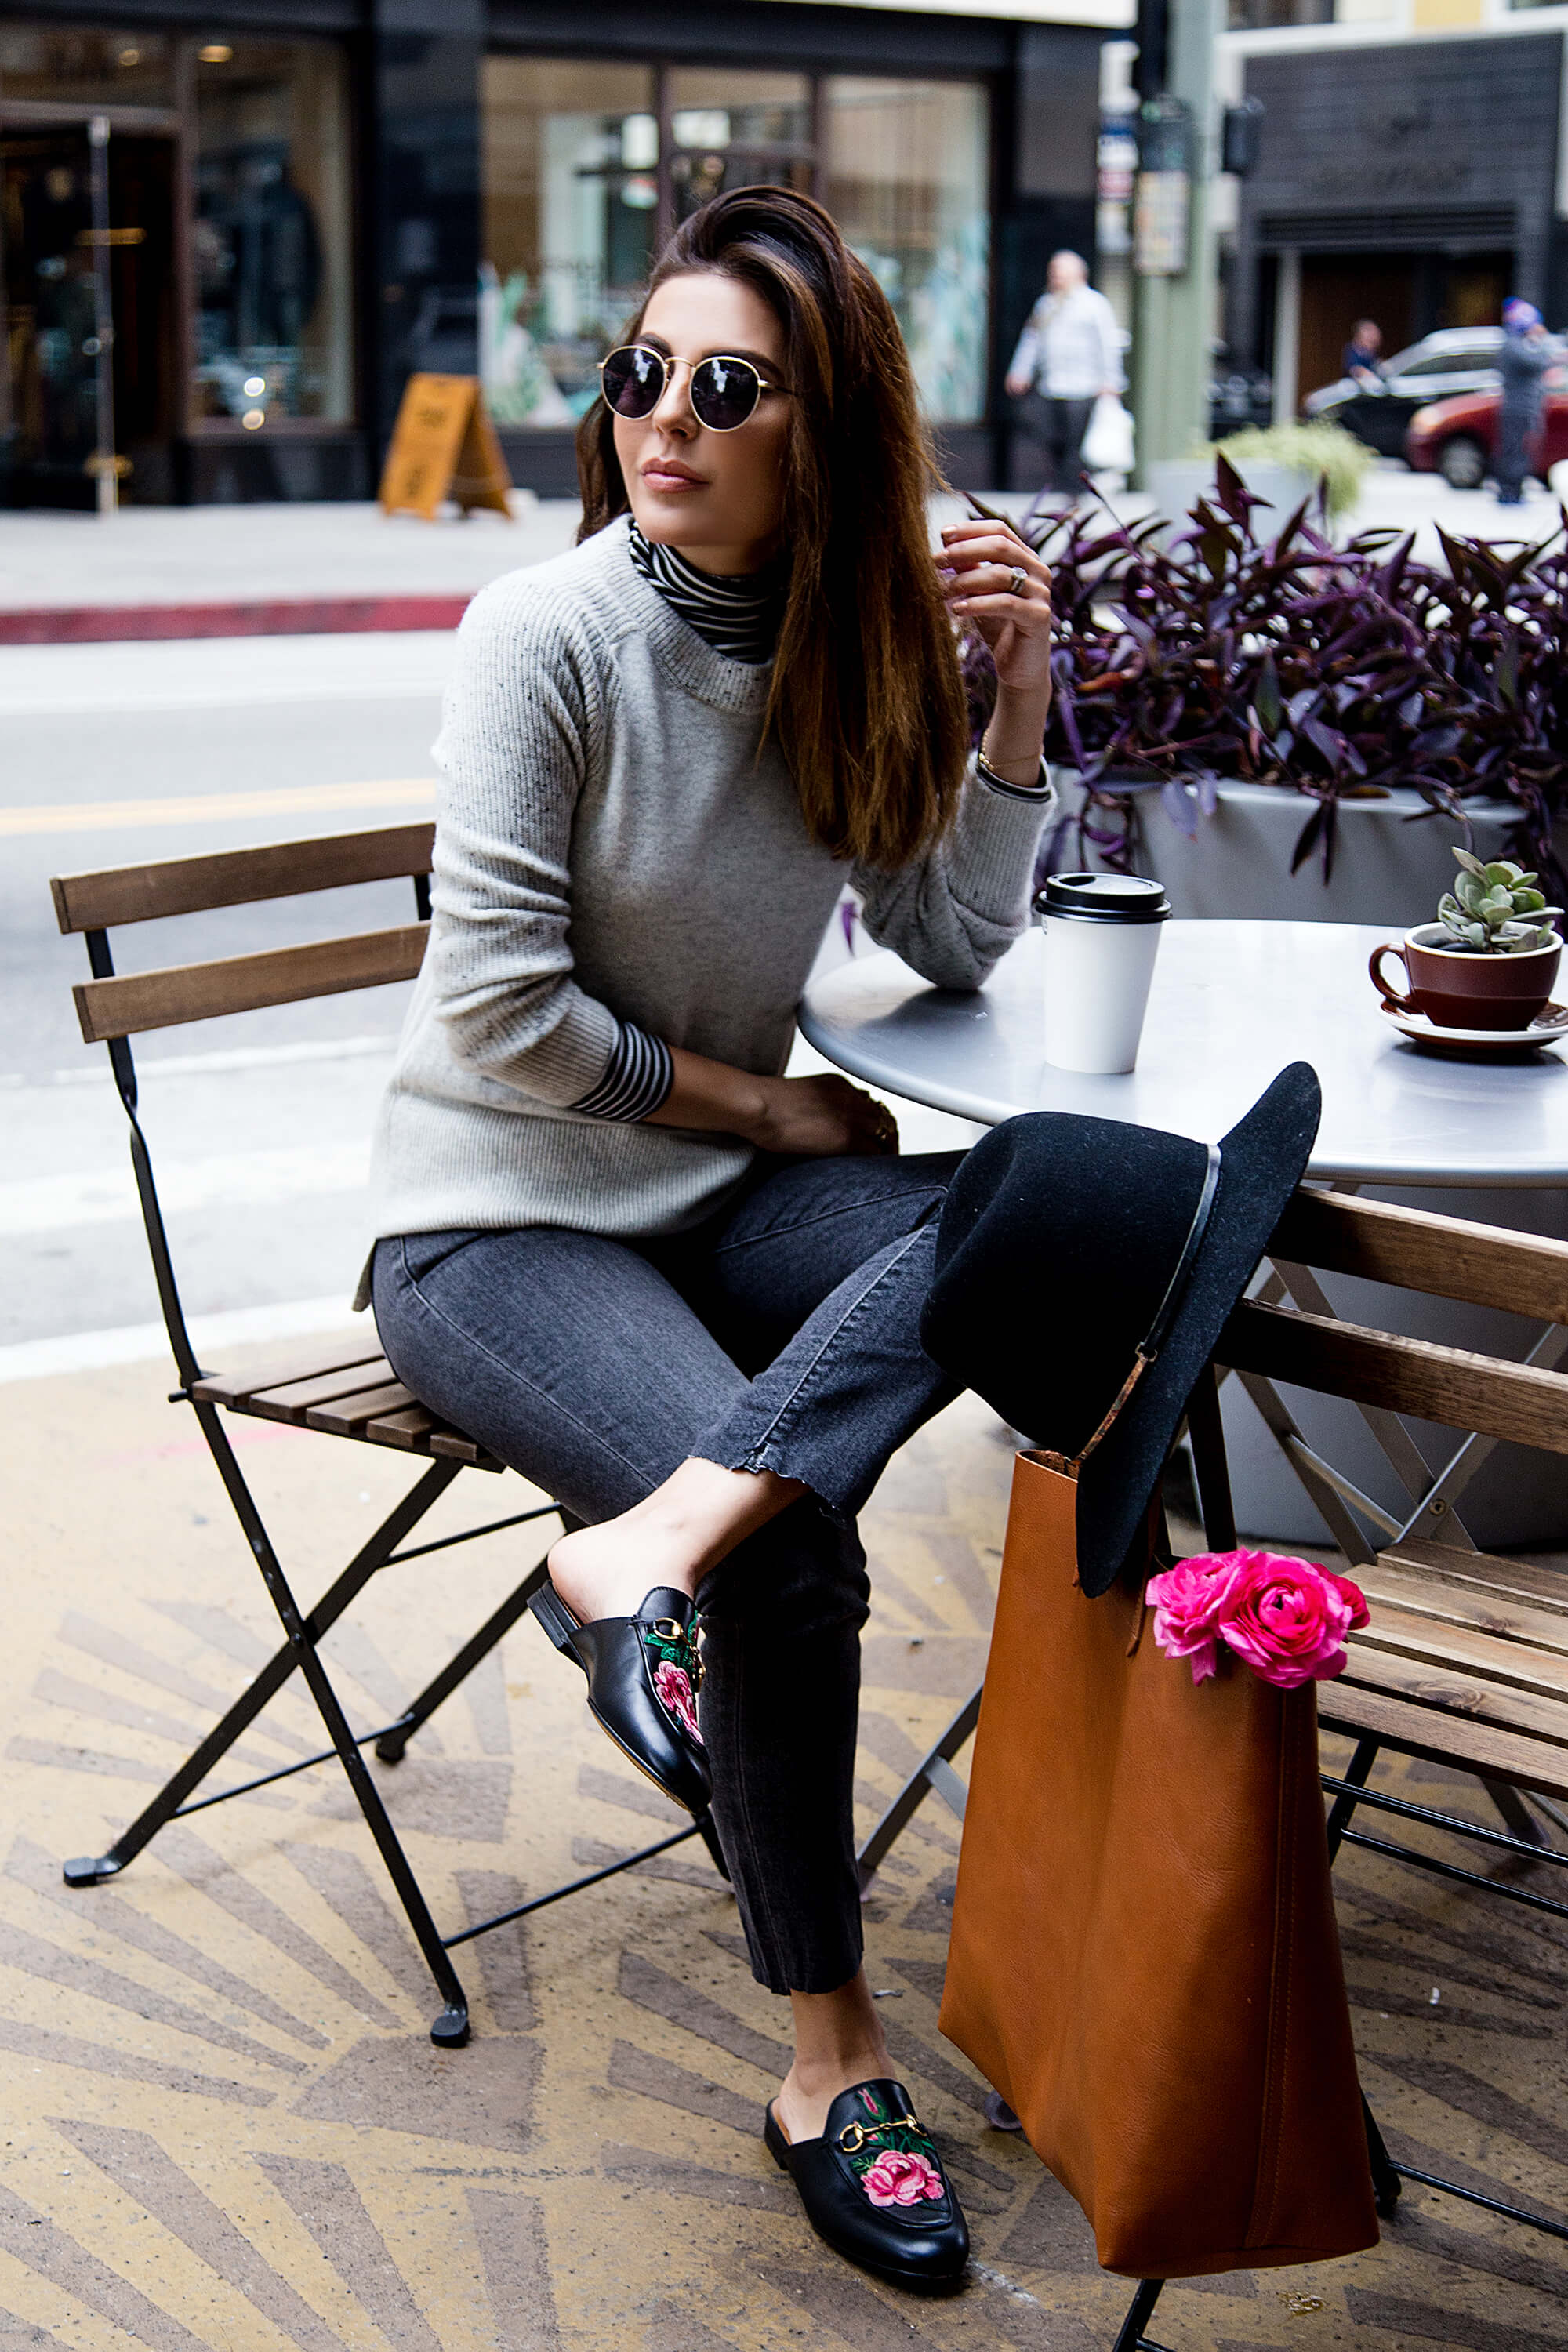 sona gasparian's tips for how to elevate a casual outfit to the next level